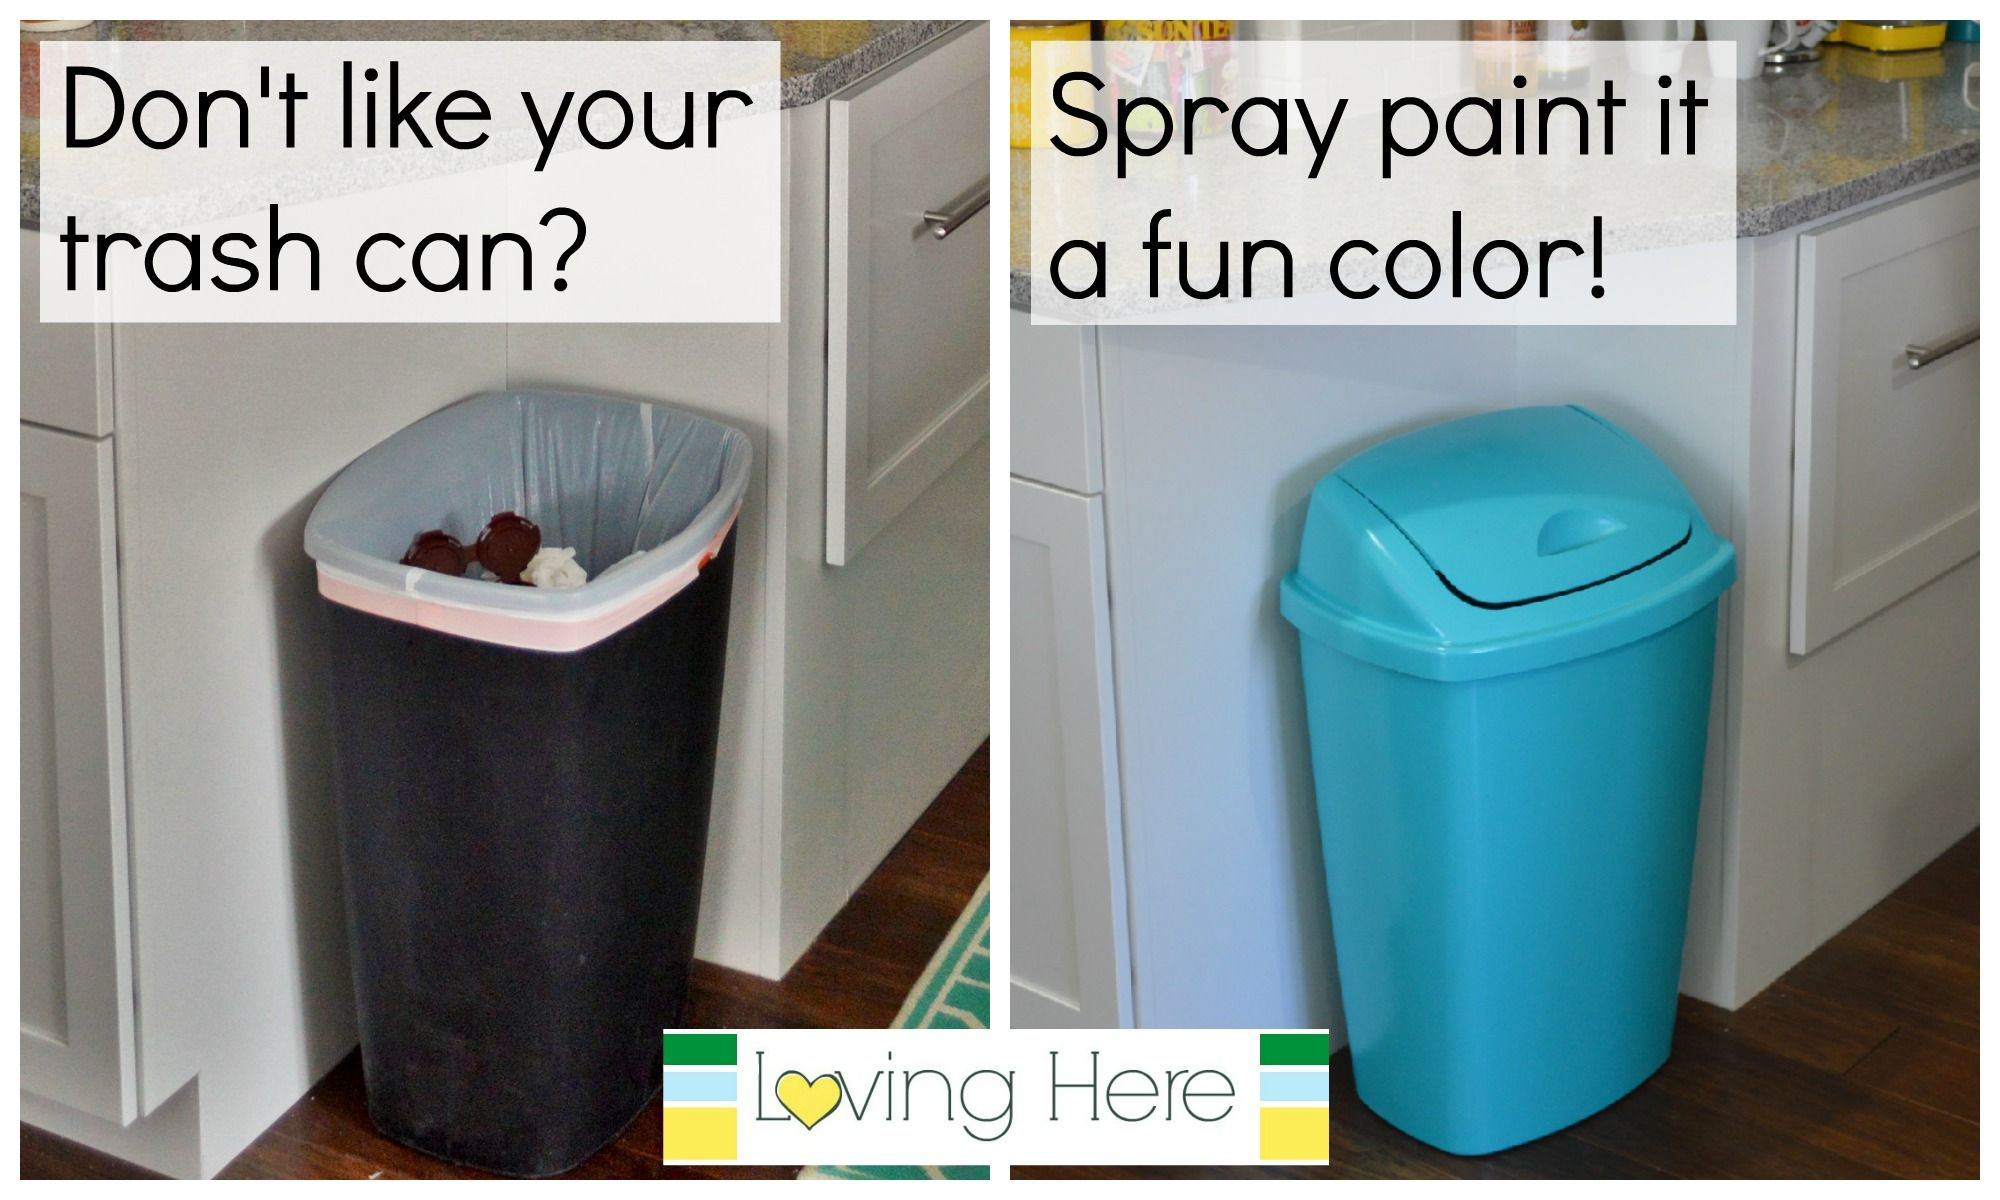 Painting a trash can to match the kitchen! | Organize & Clean ...